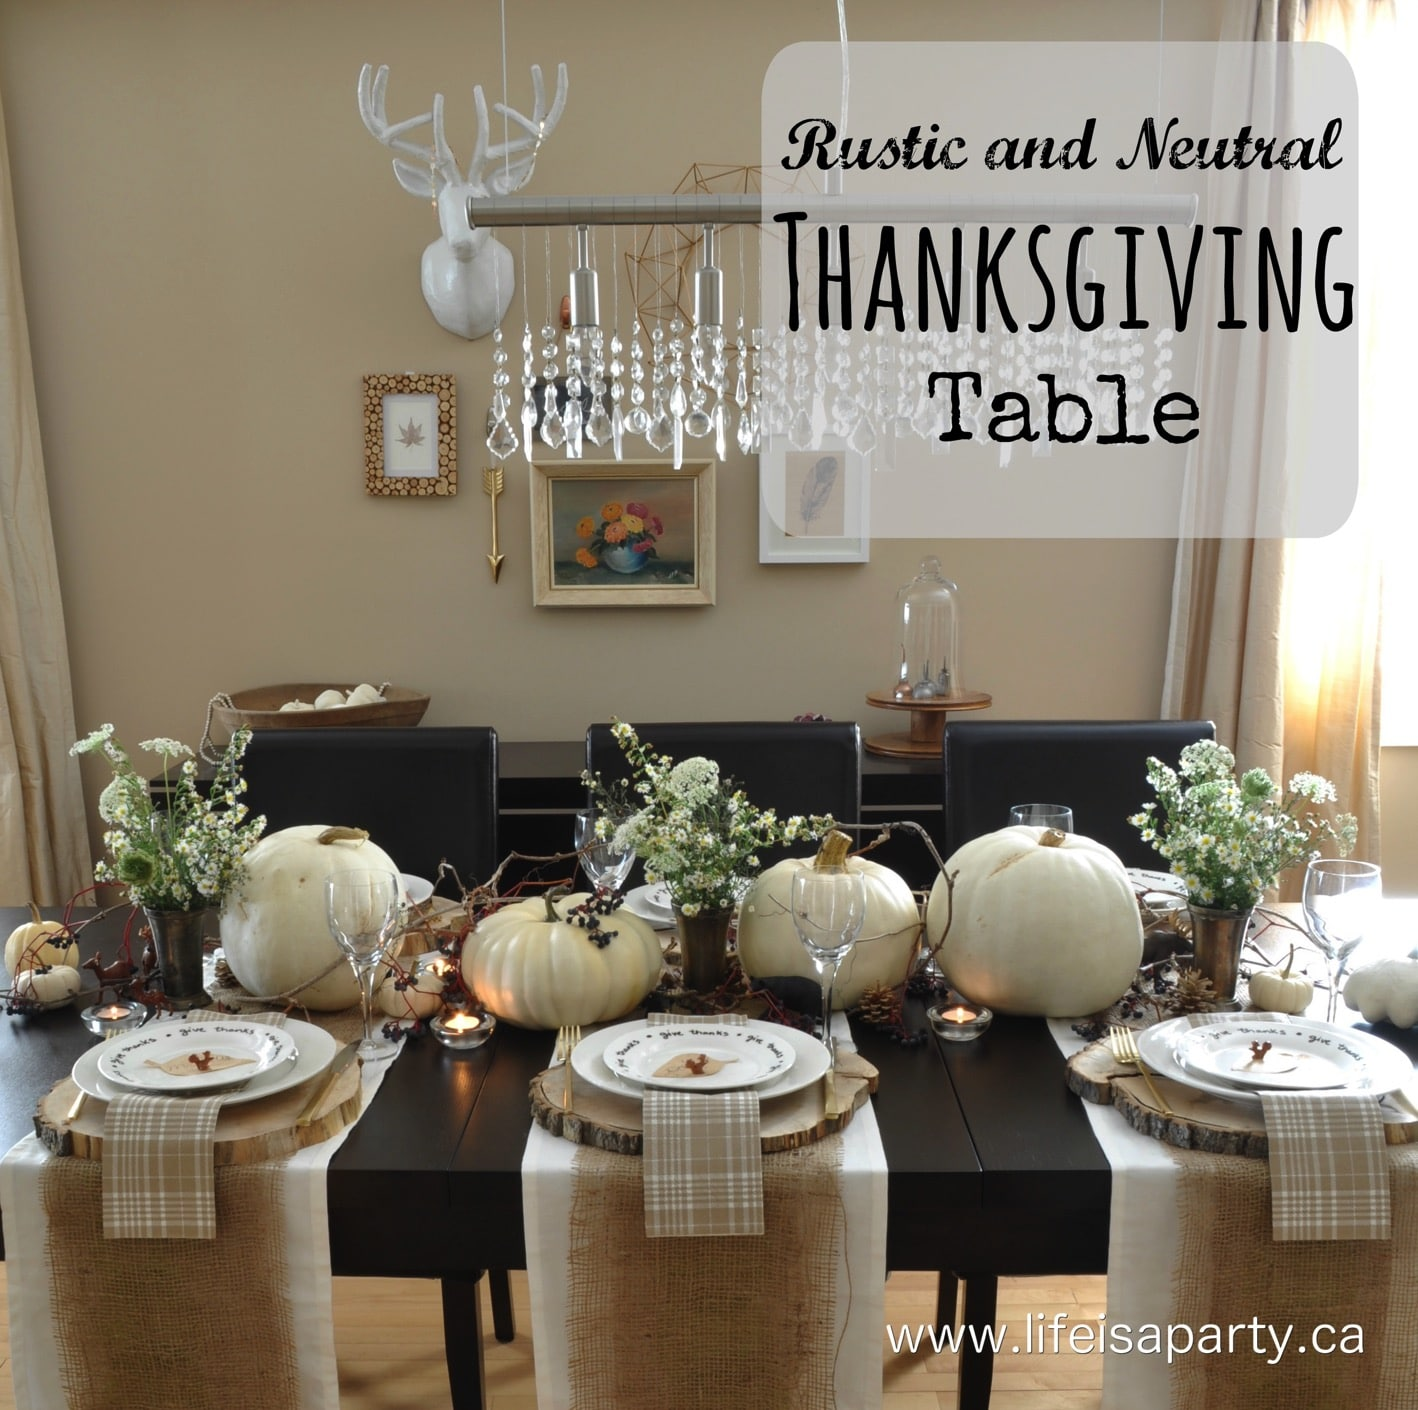 Restaurant Tables Canada Rustic And Neutral Thanksgiving Table Life Is A Party